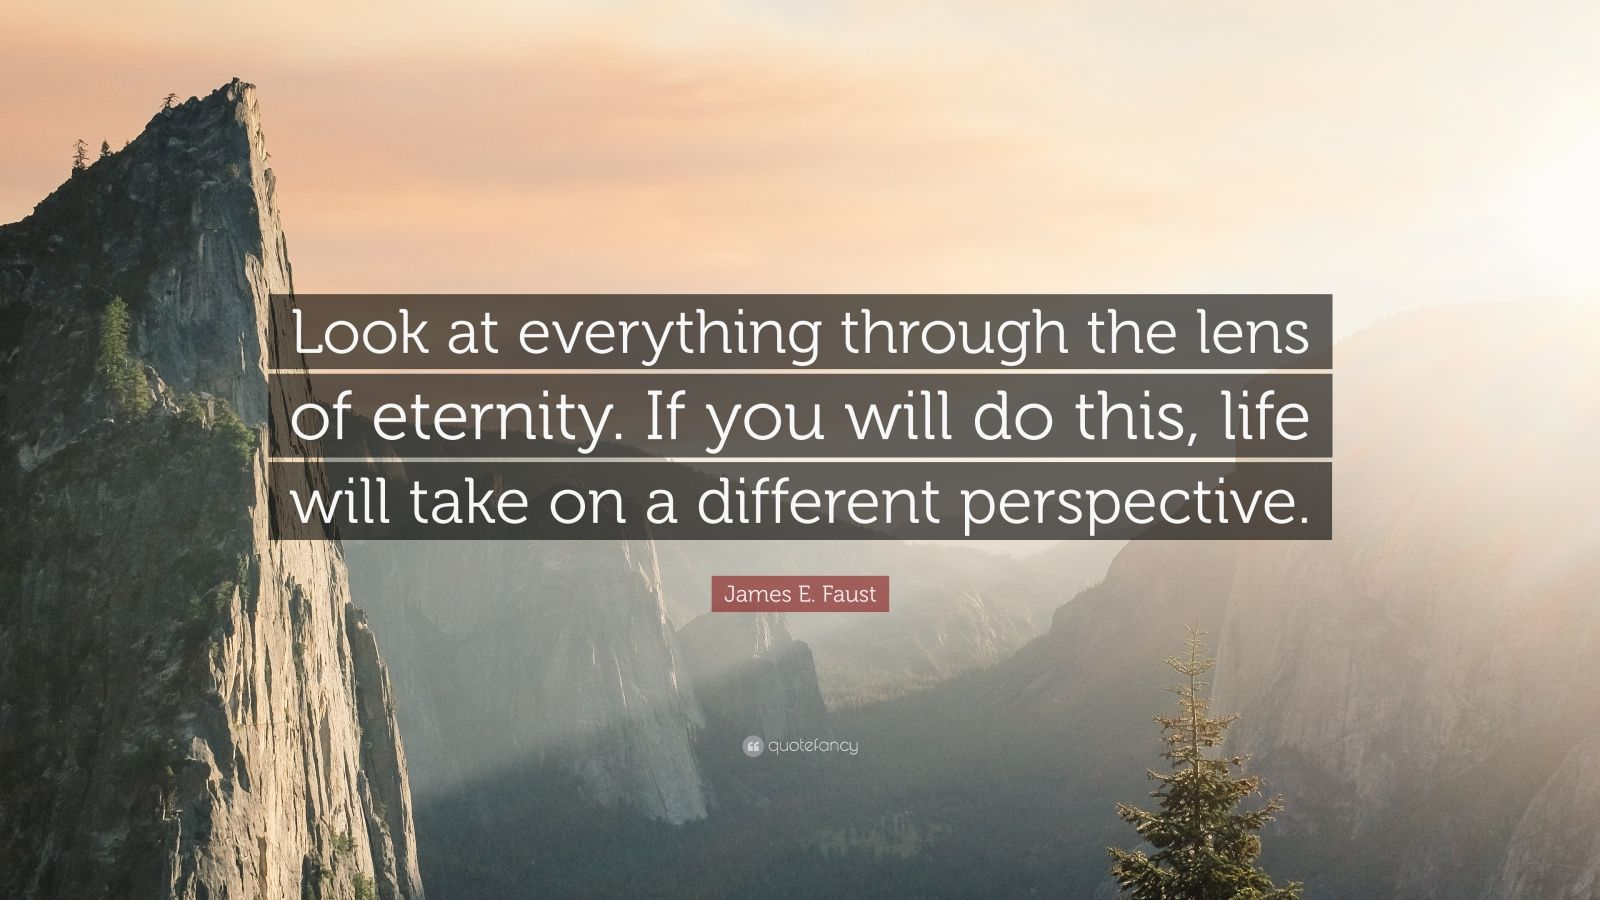 """James E. Faust Quote: """"Look at everything through the lens of eternity. If you will do this, life will take on a different perspective."""""""